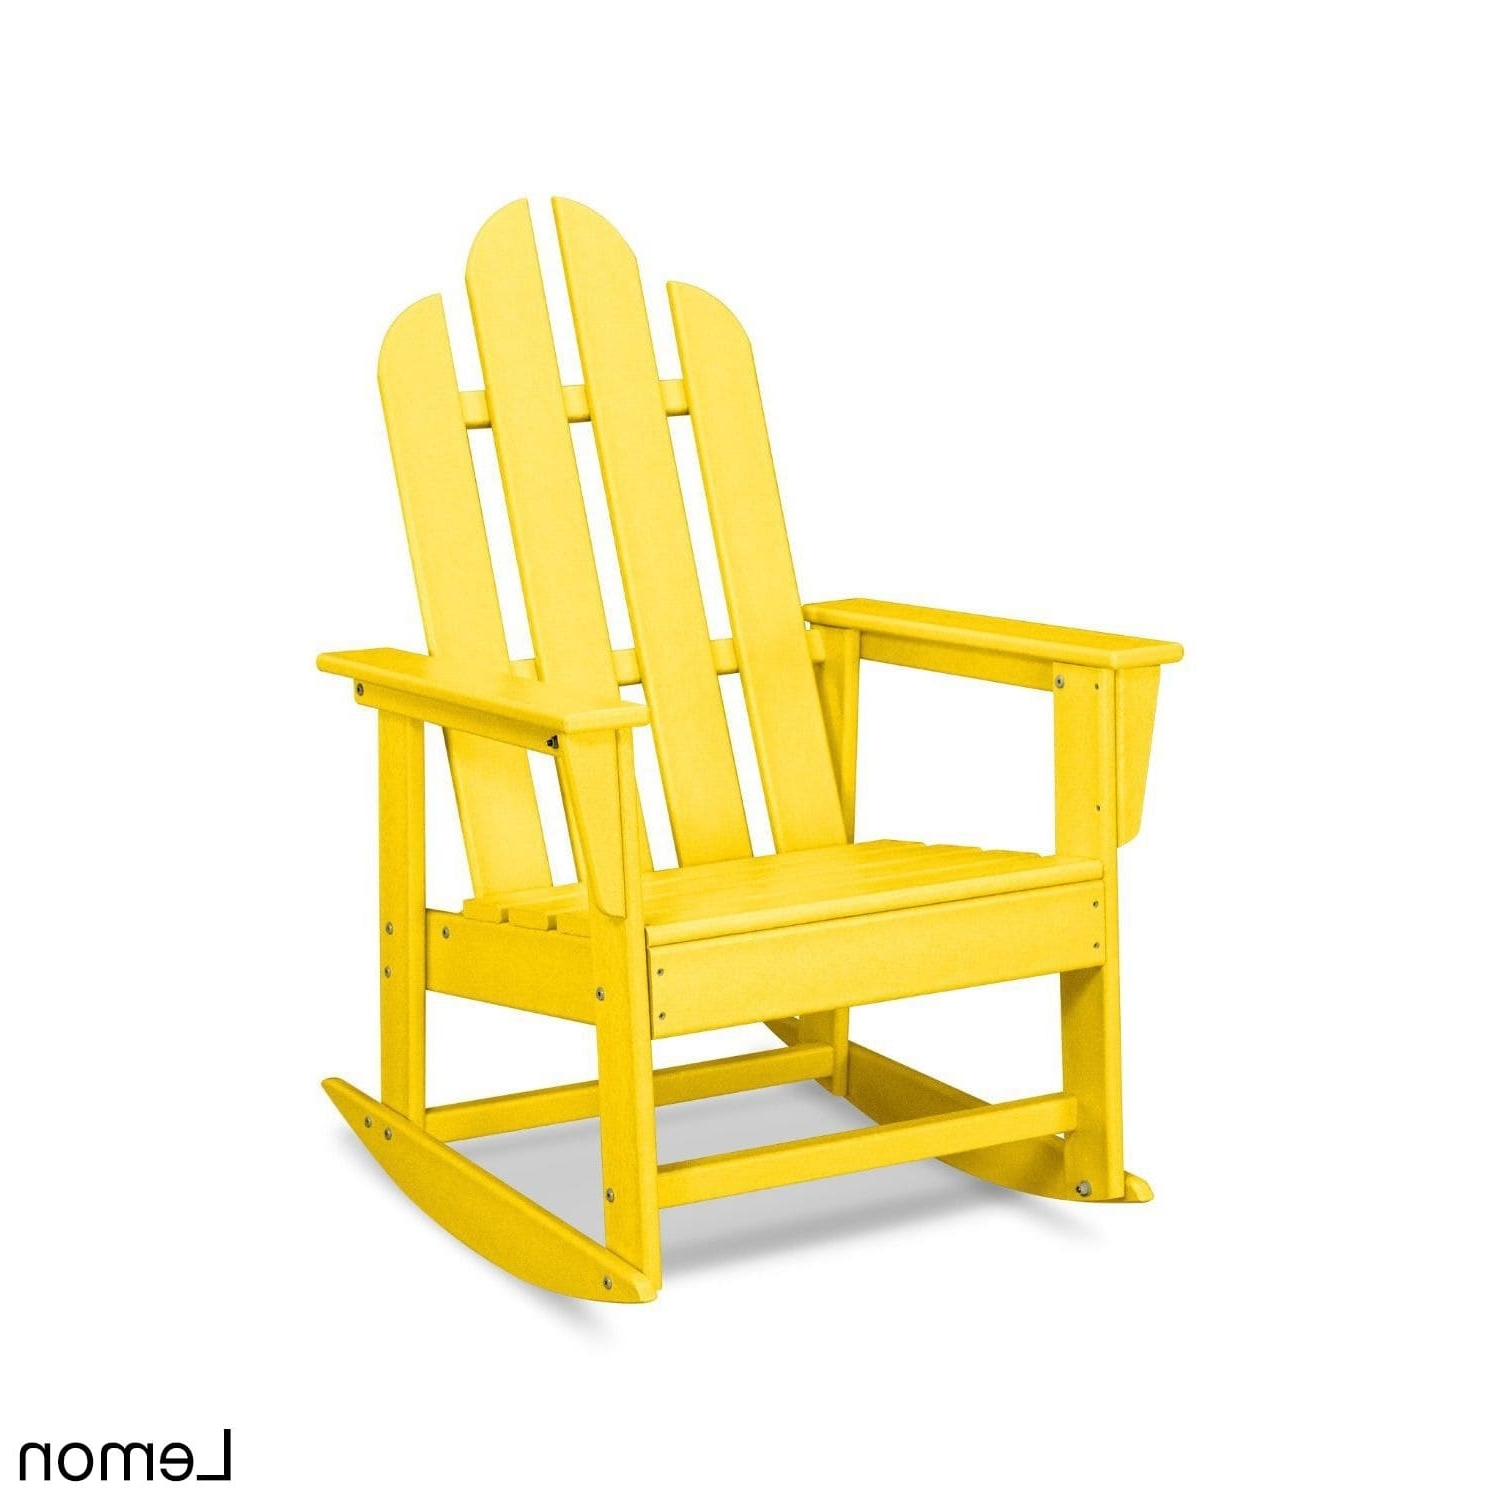 Yellow Outdoor Rocking Chairs intended for Most Current Shop Polywood Long Island Outdoor Rocking Chair - Free Shipping